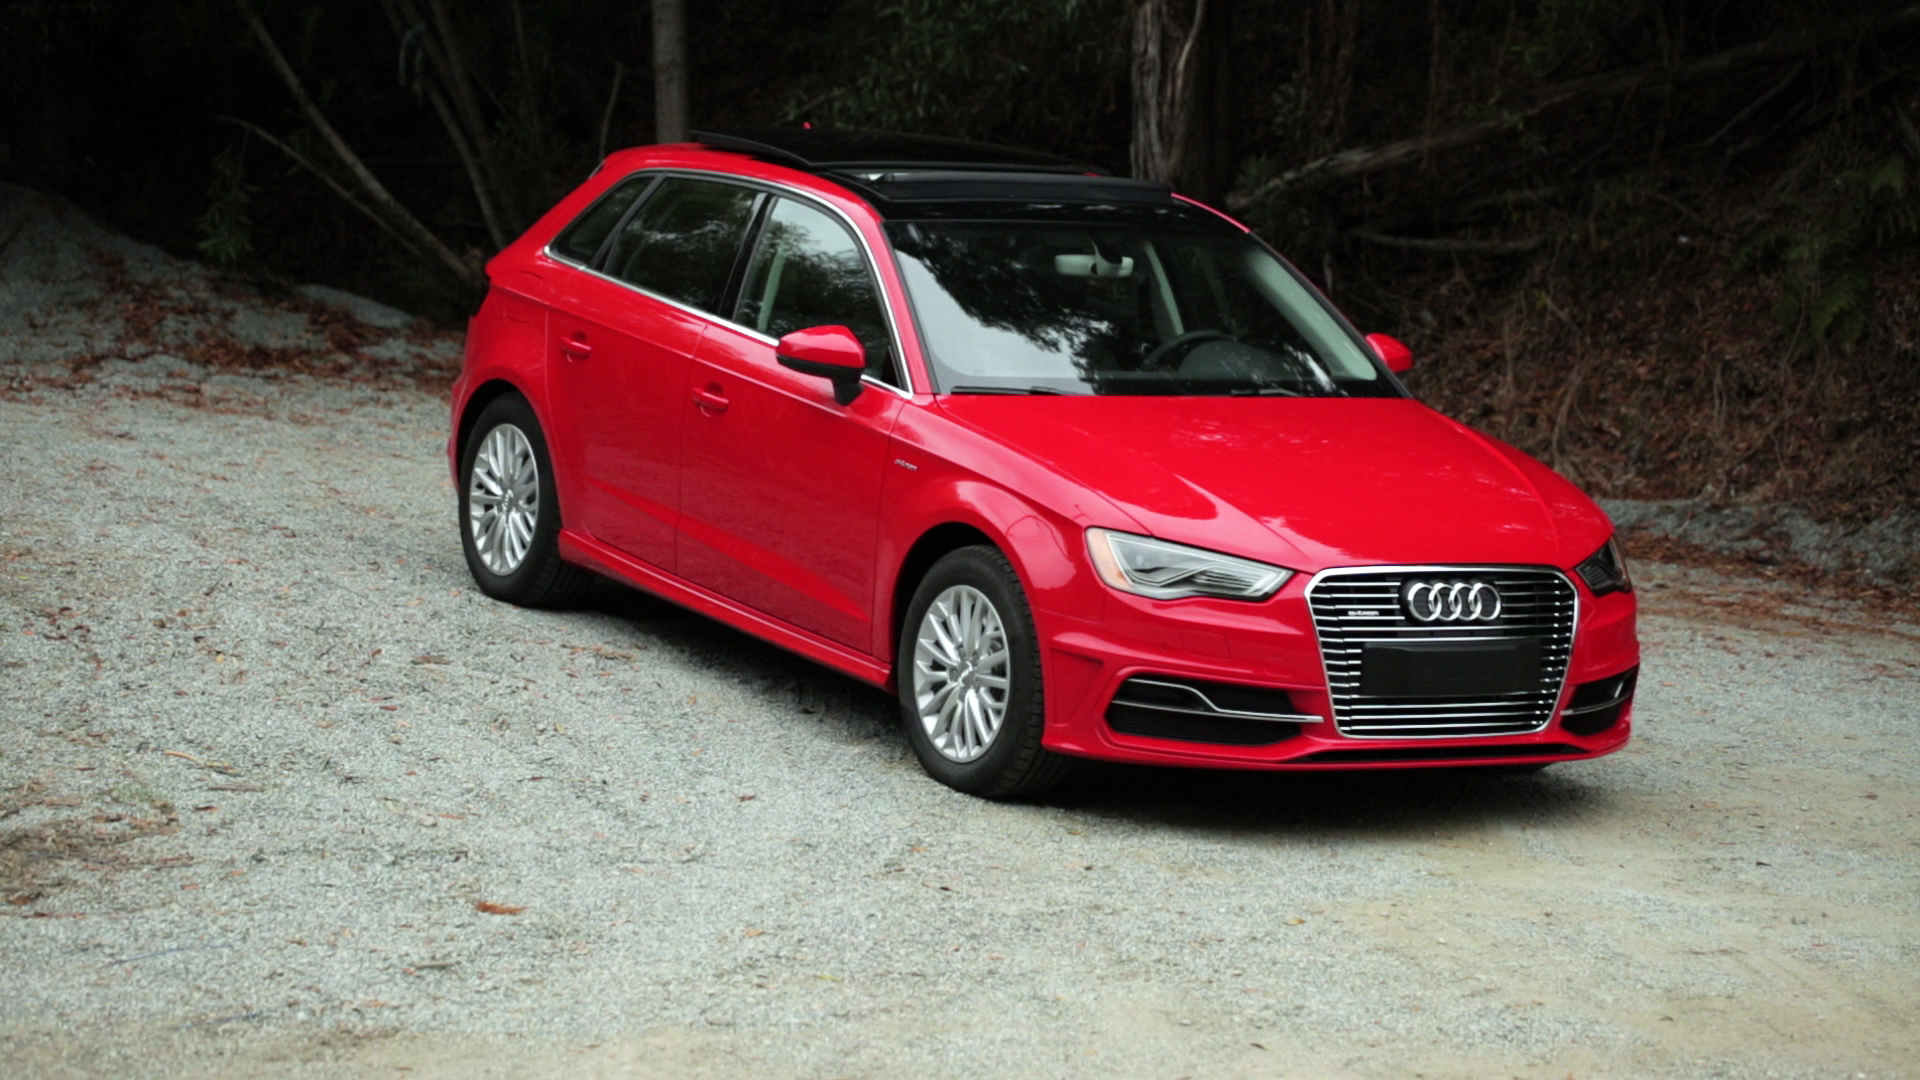 Video: On the road: 2016 Audi A3 e-tron